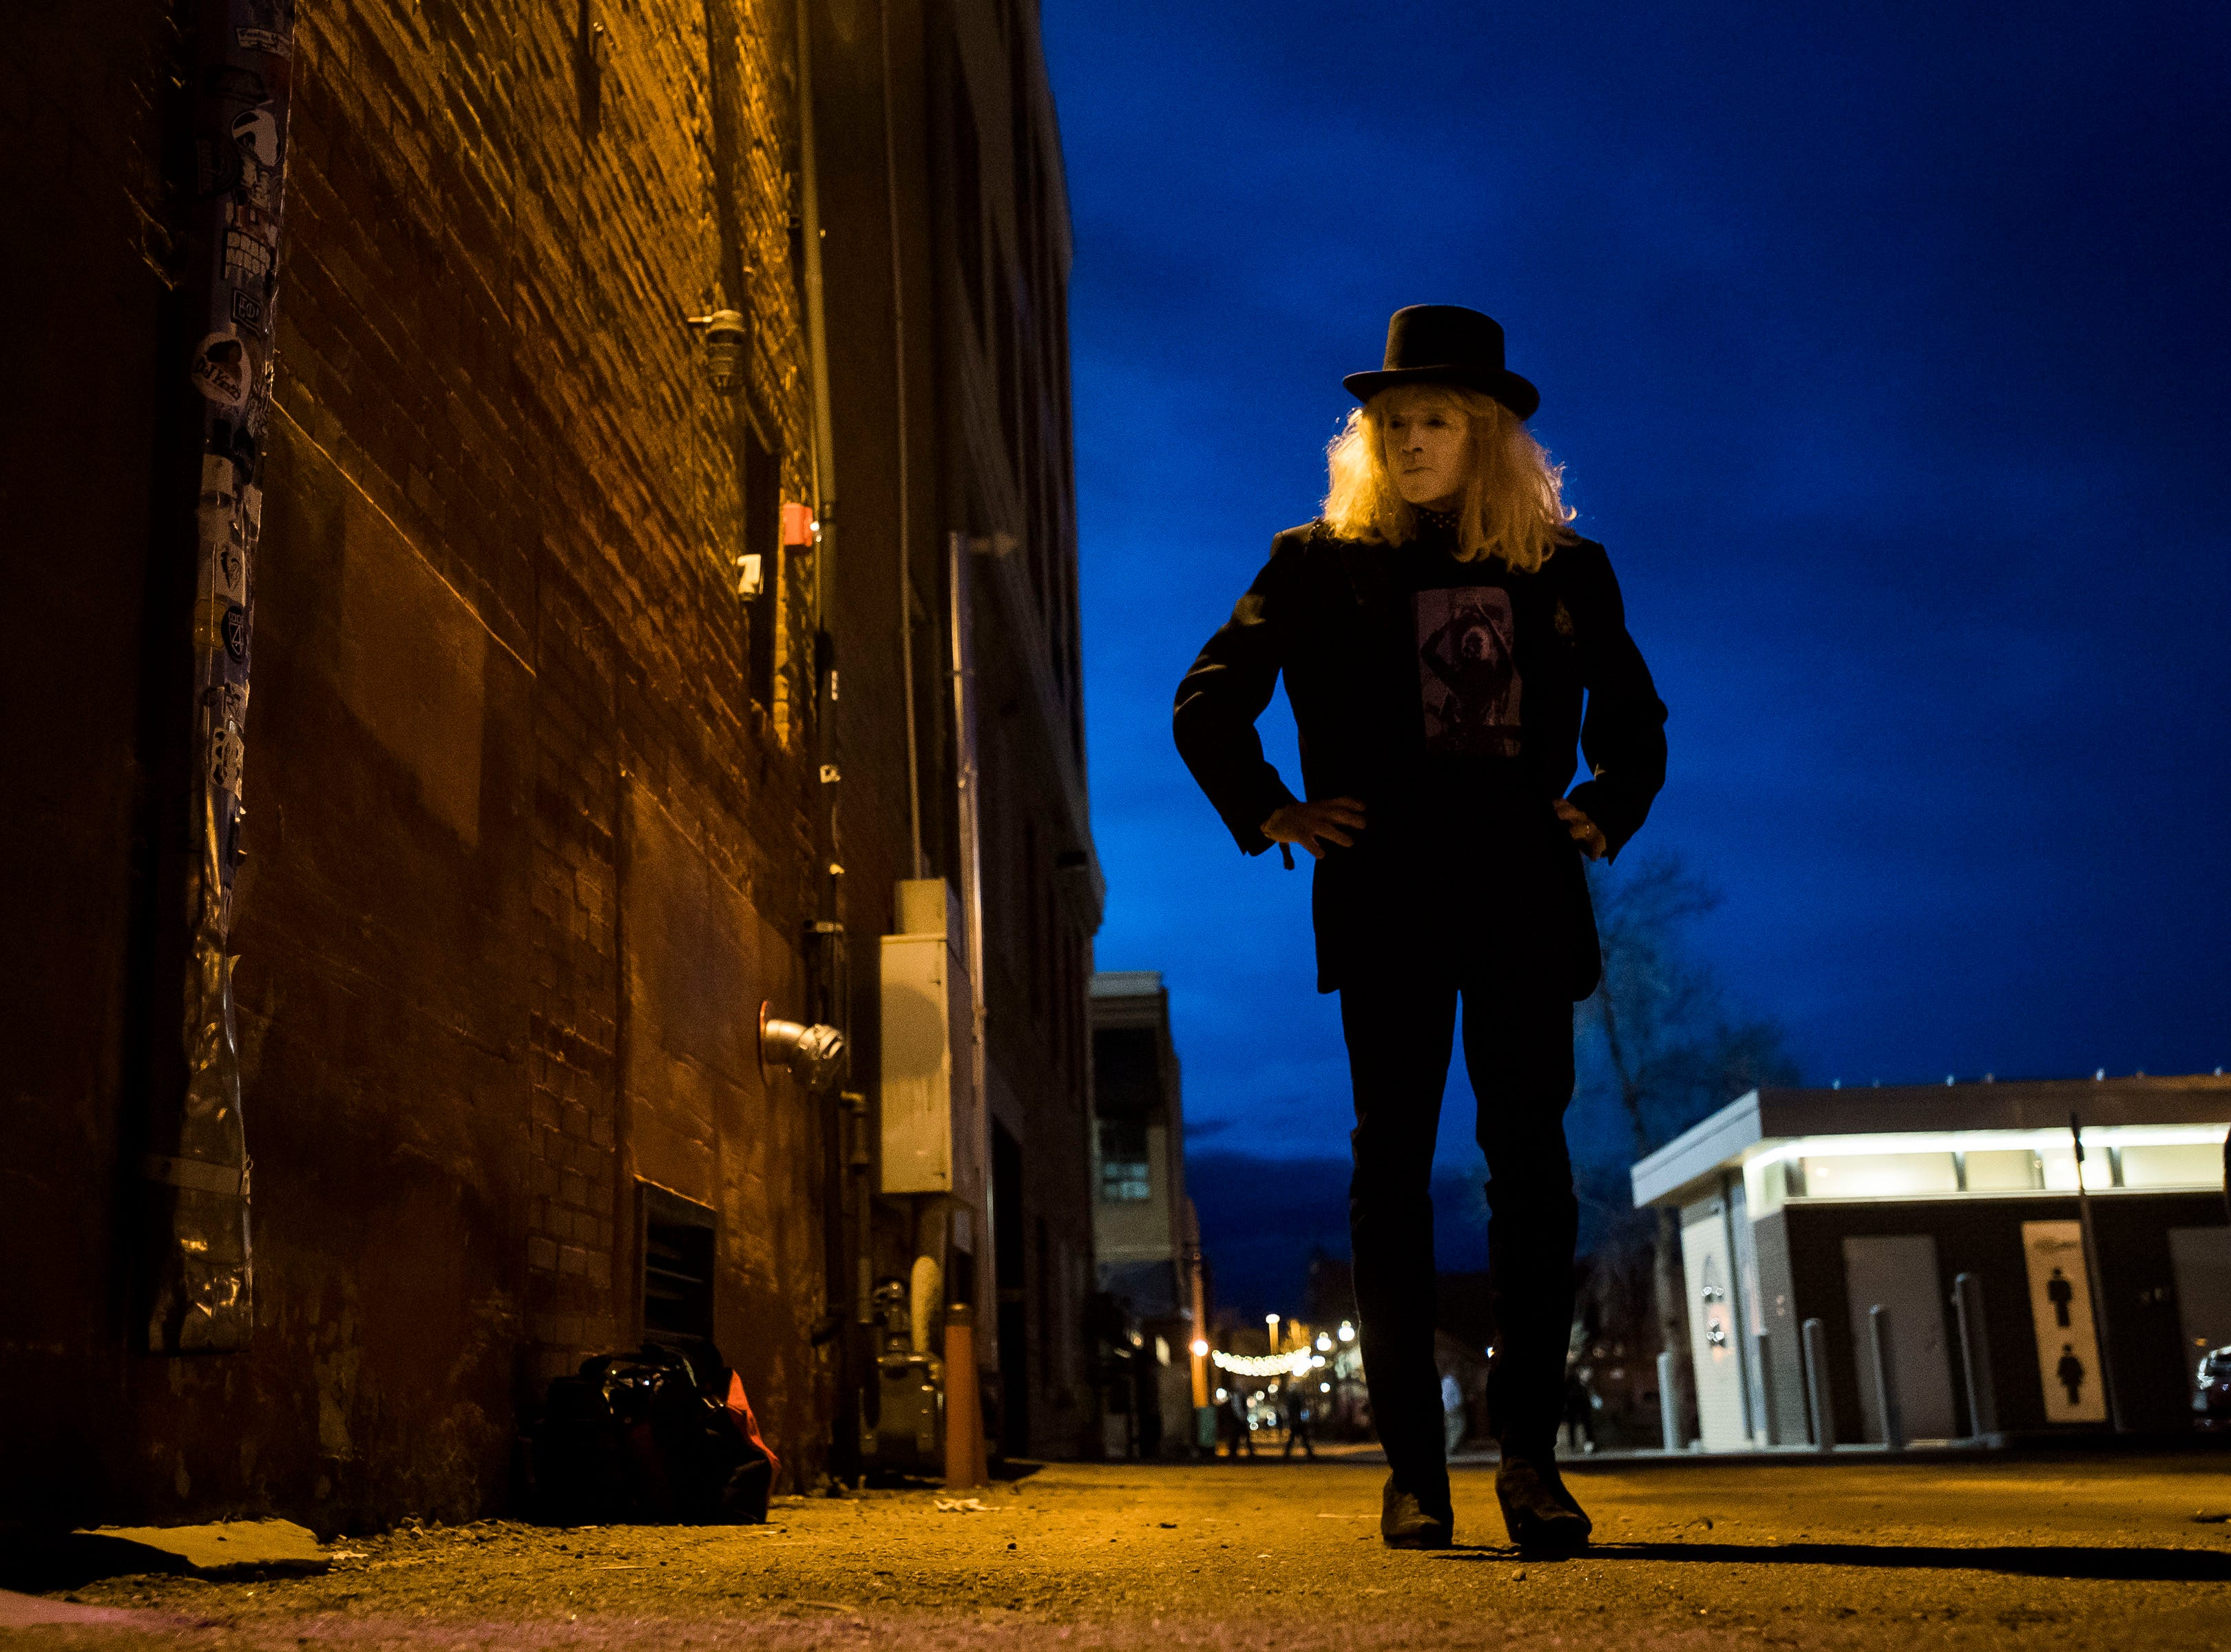 The Velveteers' Ozzie paces in the back alley behind of The Aggie Theatre while waiting to take the stage during the FoCoMX XI music festival on Friday, April 26, 2019, in Fort Collins, Colo.